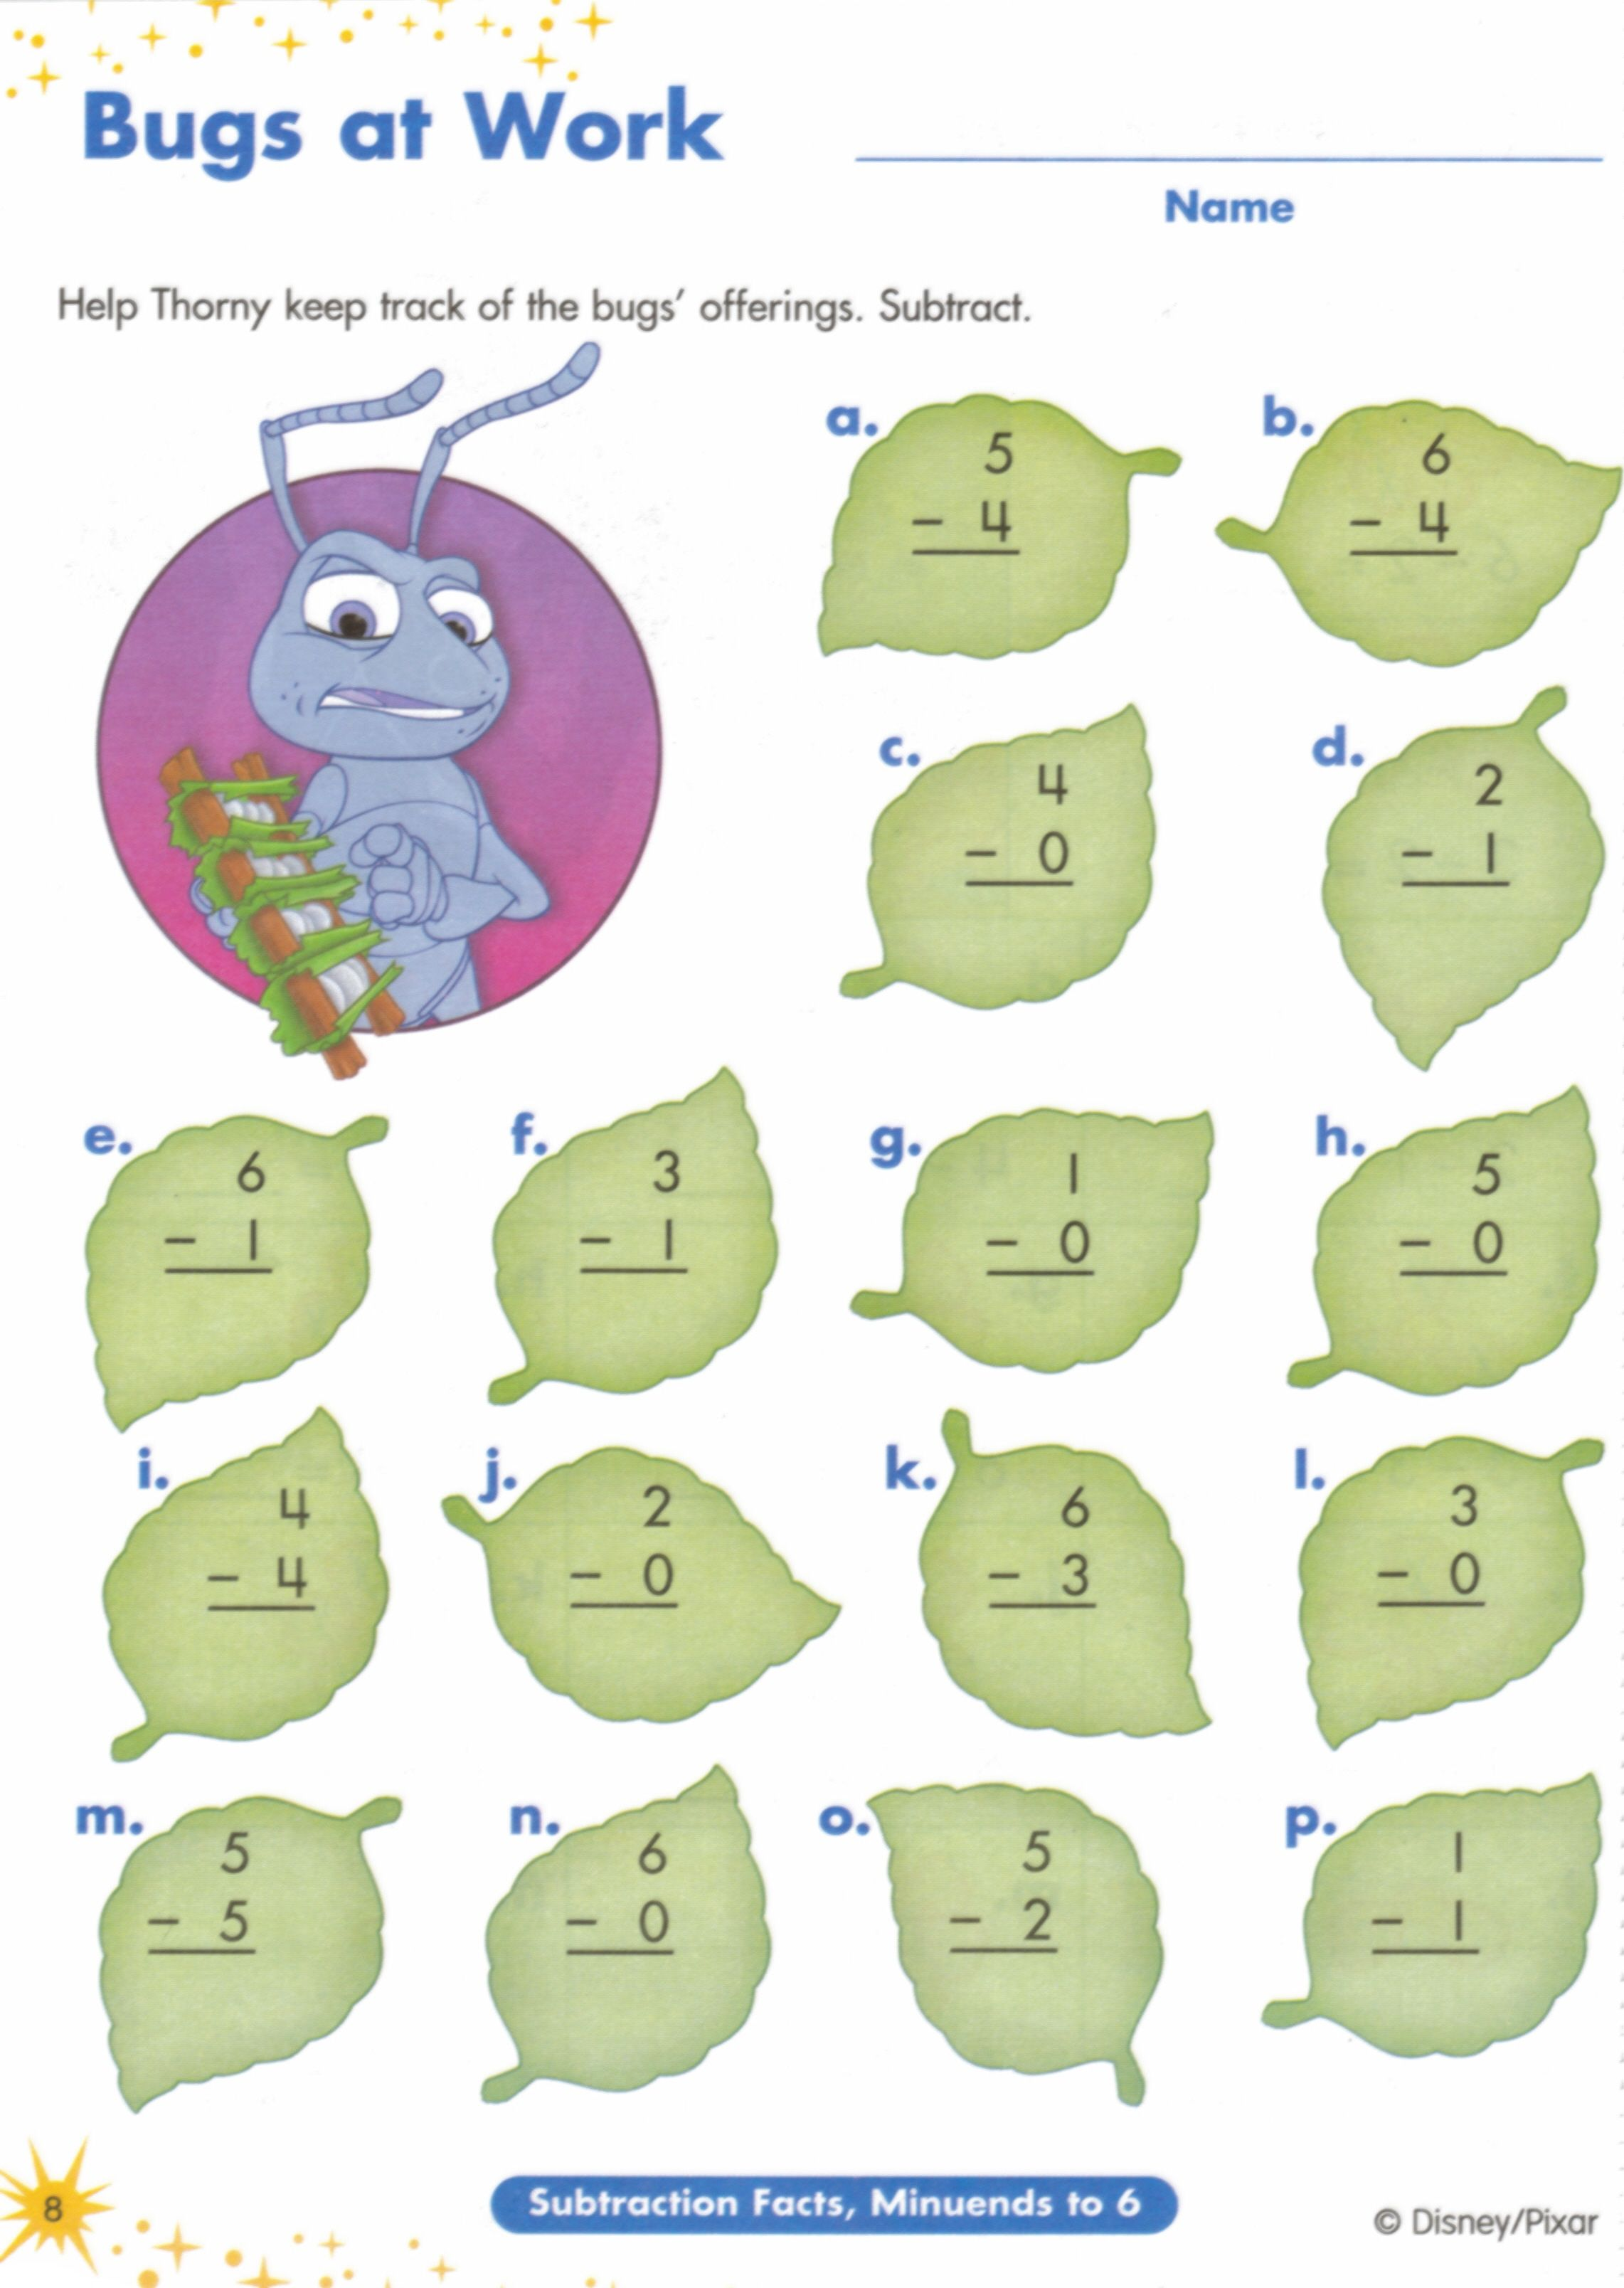 Proatmealus  Remarkable  Images About Worksheets On Pinterest  Fun Facts For Kids  With Entrancing  Images About Worksheets On Pinterest  Fun Facts For Kids Earth Day Worksheets And Jungles With Astounding Subject And Predicate Worksheet Also Money Math Worksheets In Addition Graphing A Parabola From Vertex Form Worksheet And Cross Addiction Worksheets As Well As Letter S Worksheets Additionally Scale Drawing Worksheet From Pinterestcom With Proatmealus  Entrancing  Images About Worksheets On Pinterest  Fun Facts For Kids  With Astounding  Images About Worksheets On Pinterest  Fun Facts For Kids Earth Day Worksheets And Jungles And Remarkable Subject And Predicate Worksheet Also Money Math Worksheets In Addition Graphing A Parabola From Vertex Form Worksheet From Pinterestcom